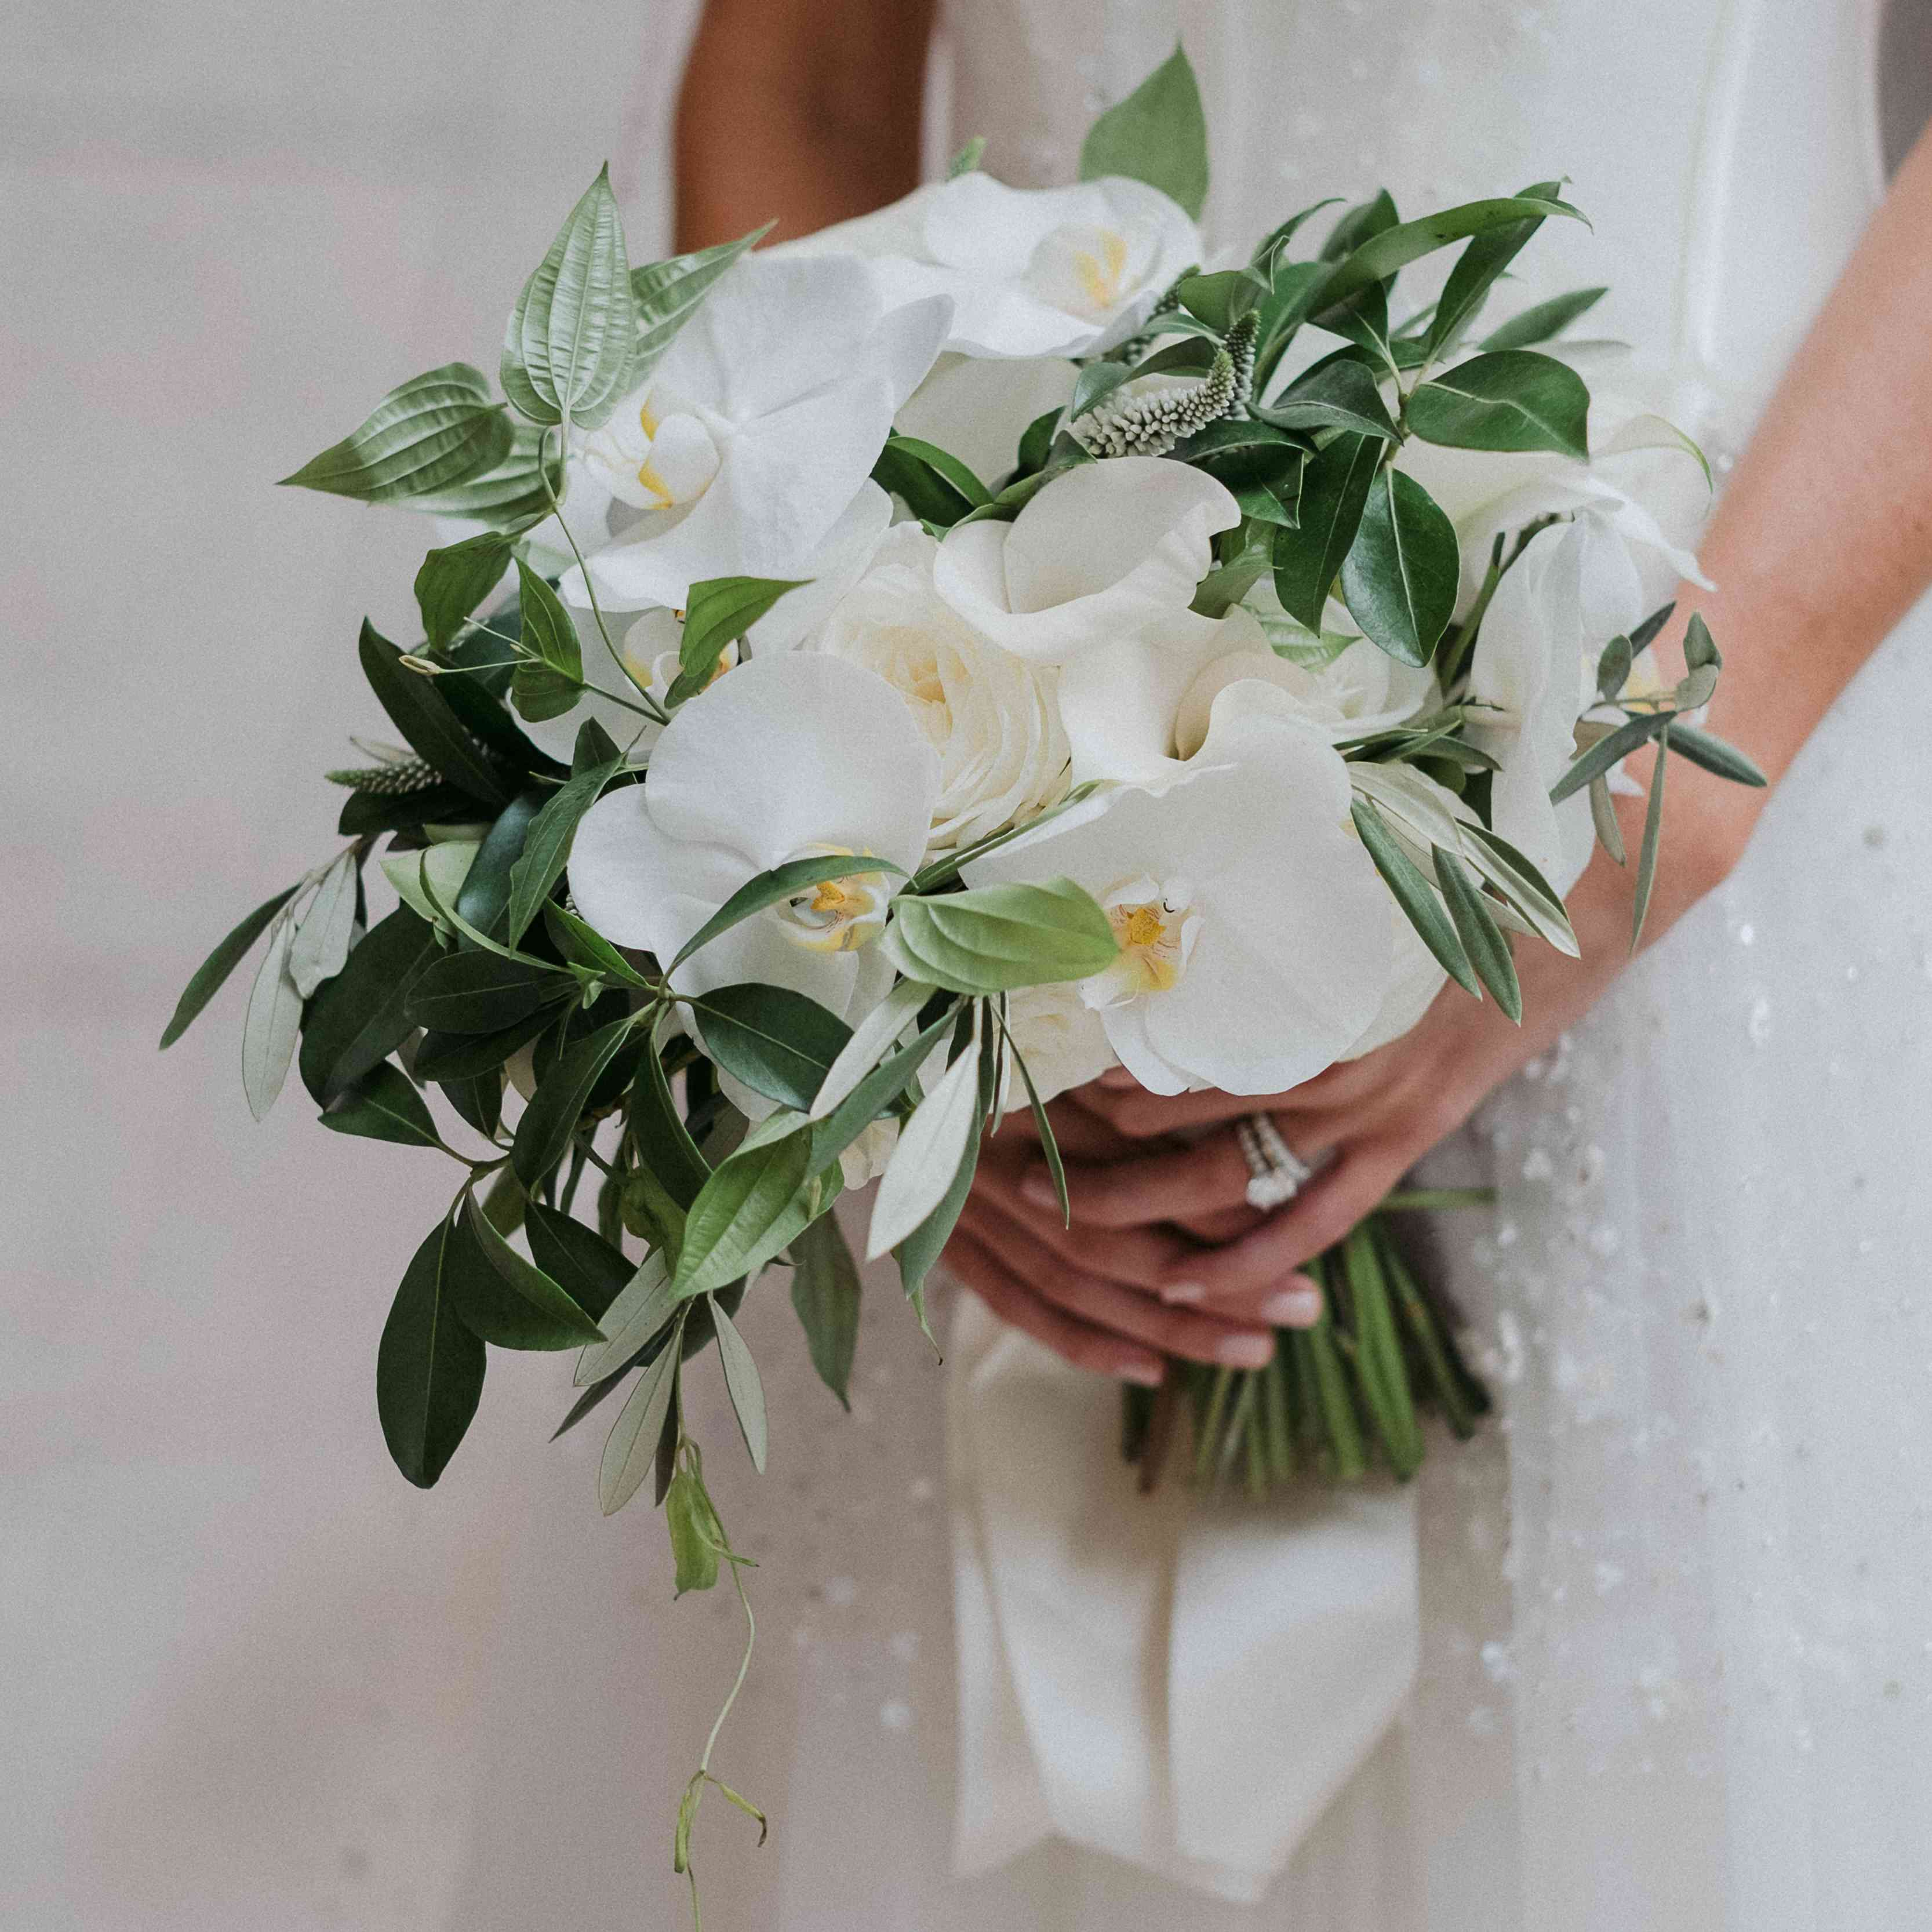 30 Orchid Bouquet Ideas For Brides And Bridesmaids